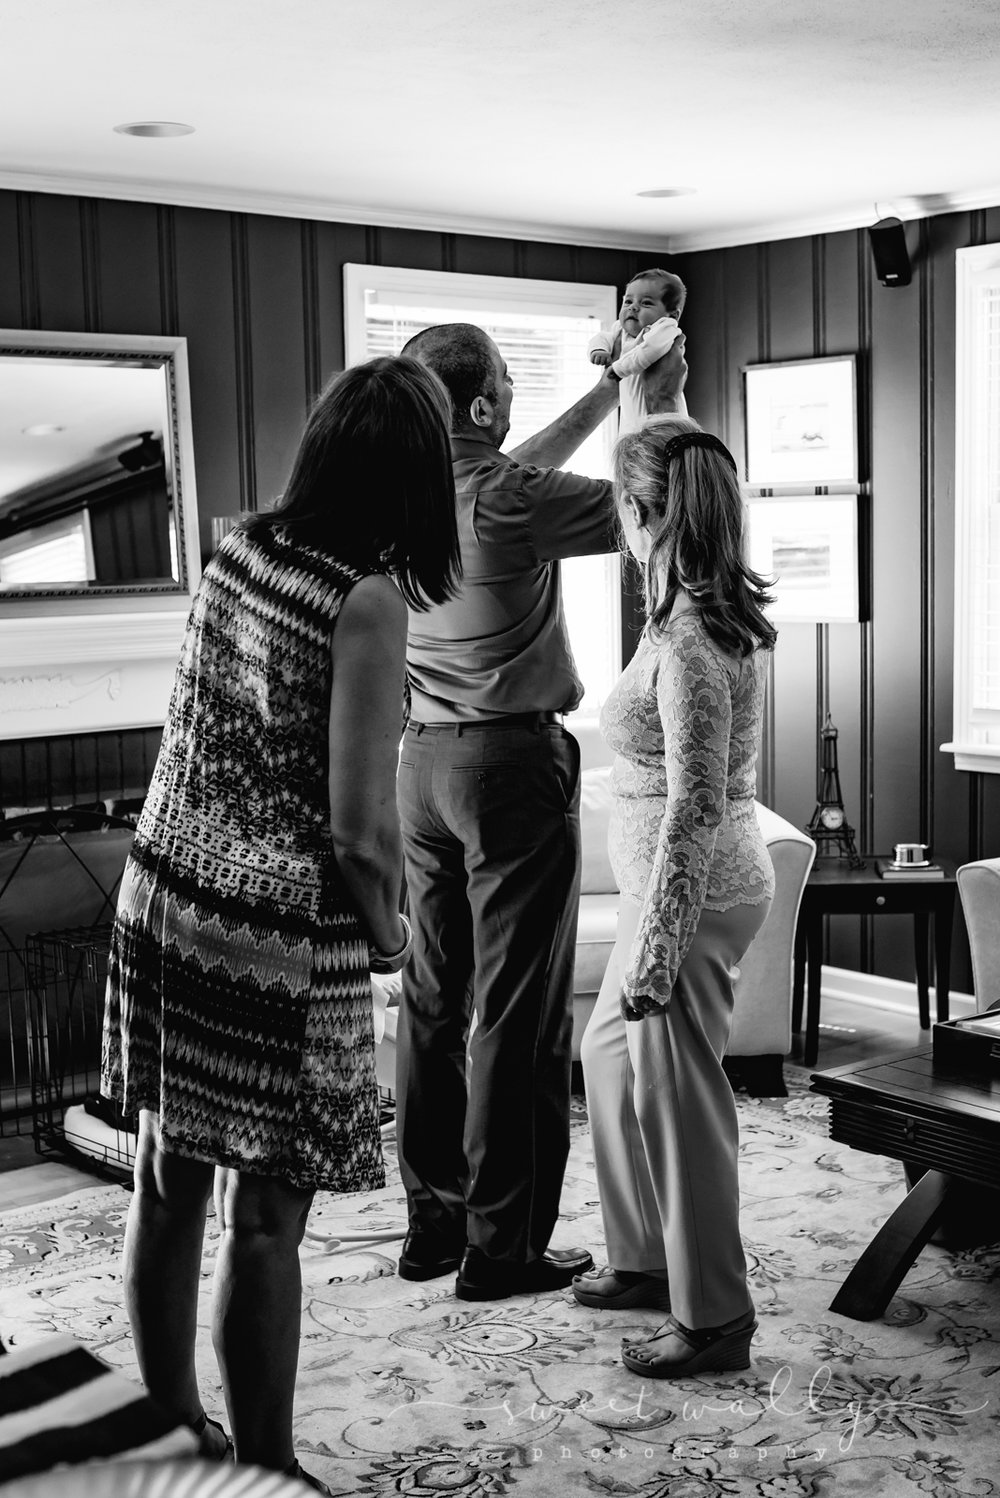 Admiring the guest of honor | Christening Photography by Sweet Wally Photography | Nashville Newborn Photographer